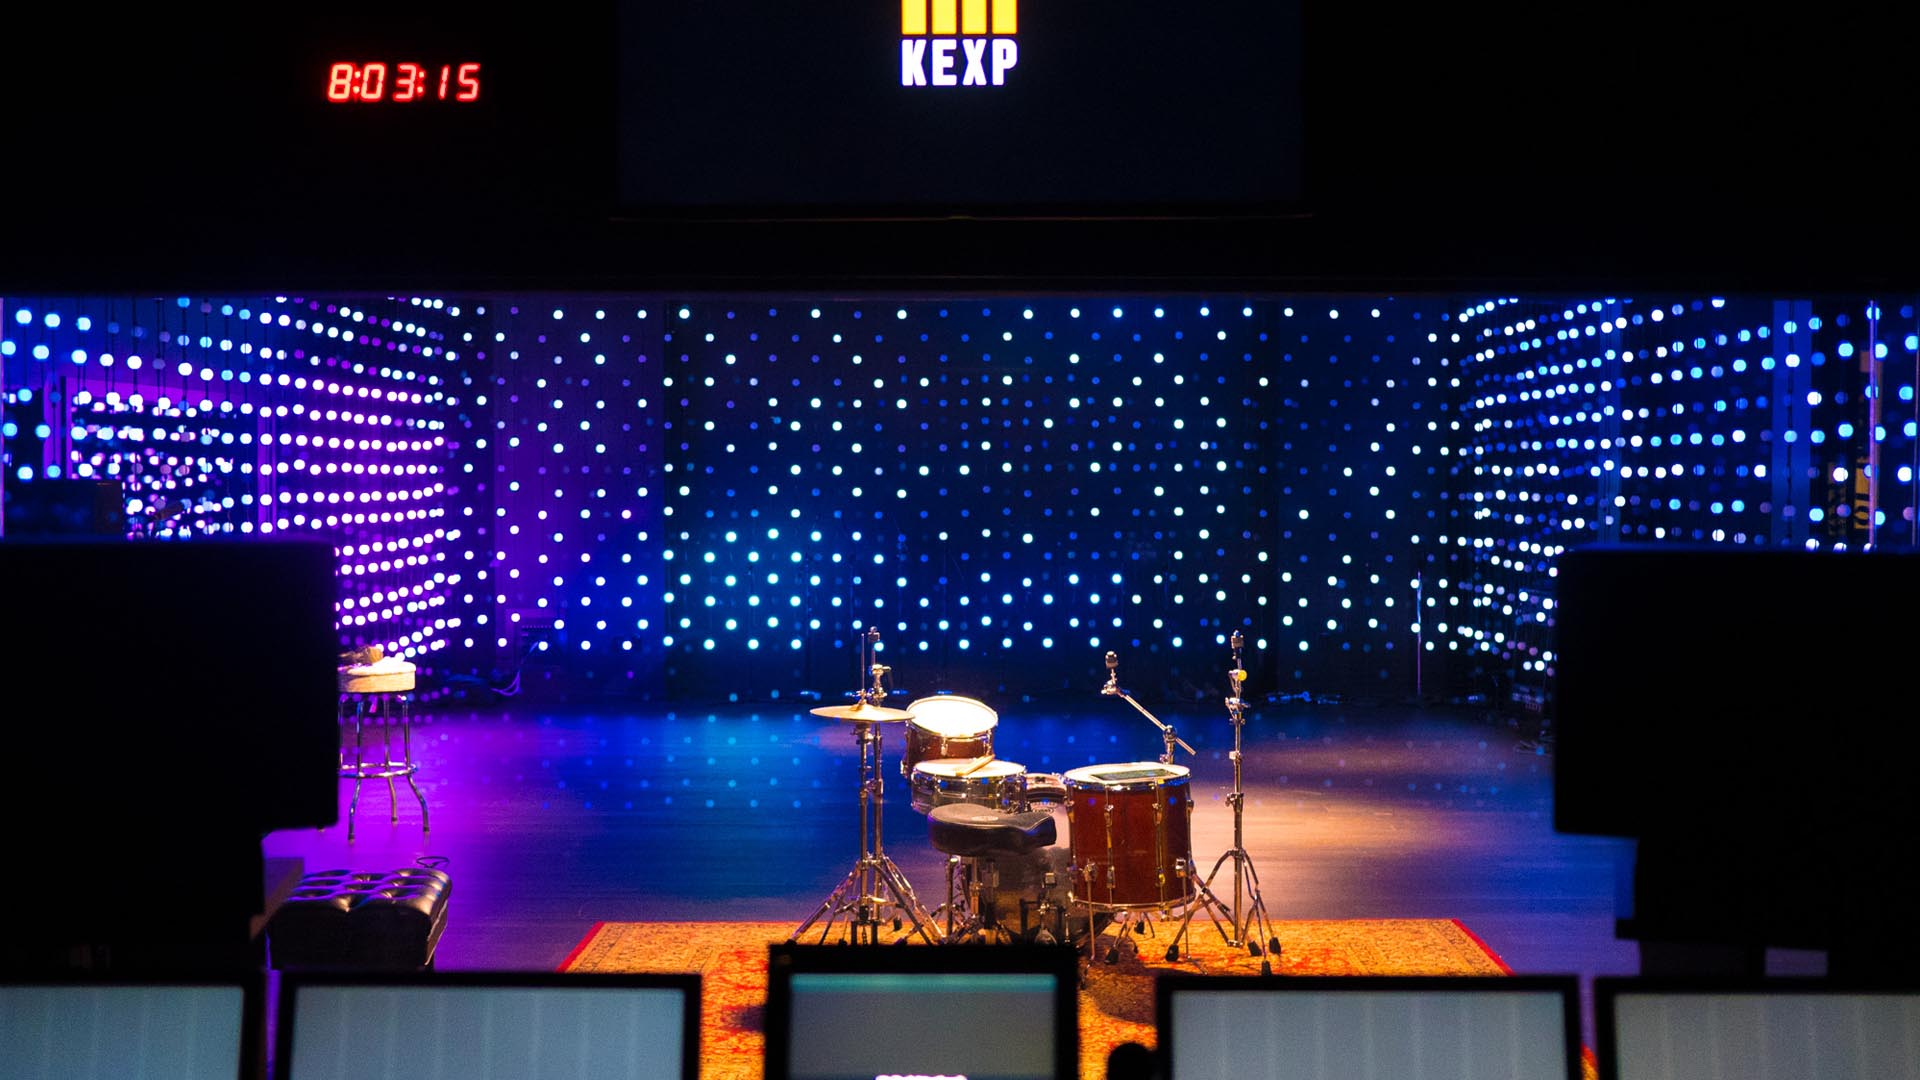 KEXP – The Live Room